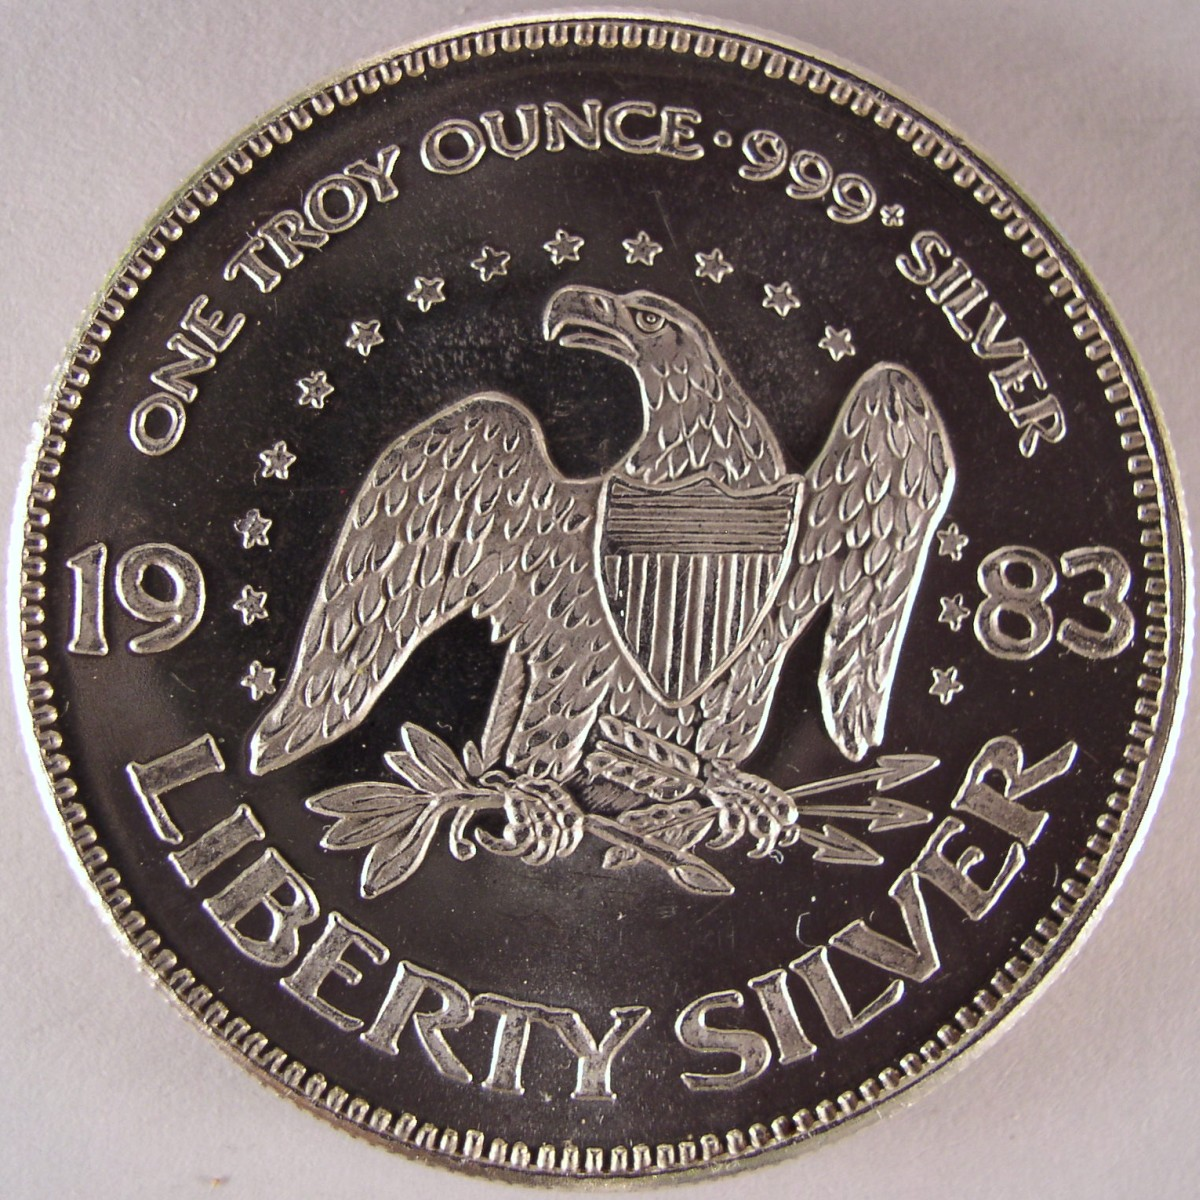 1 Oz 999 Fine Silver Amark Liberty Round 1983 The Mint